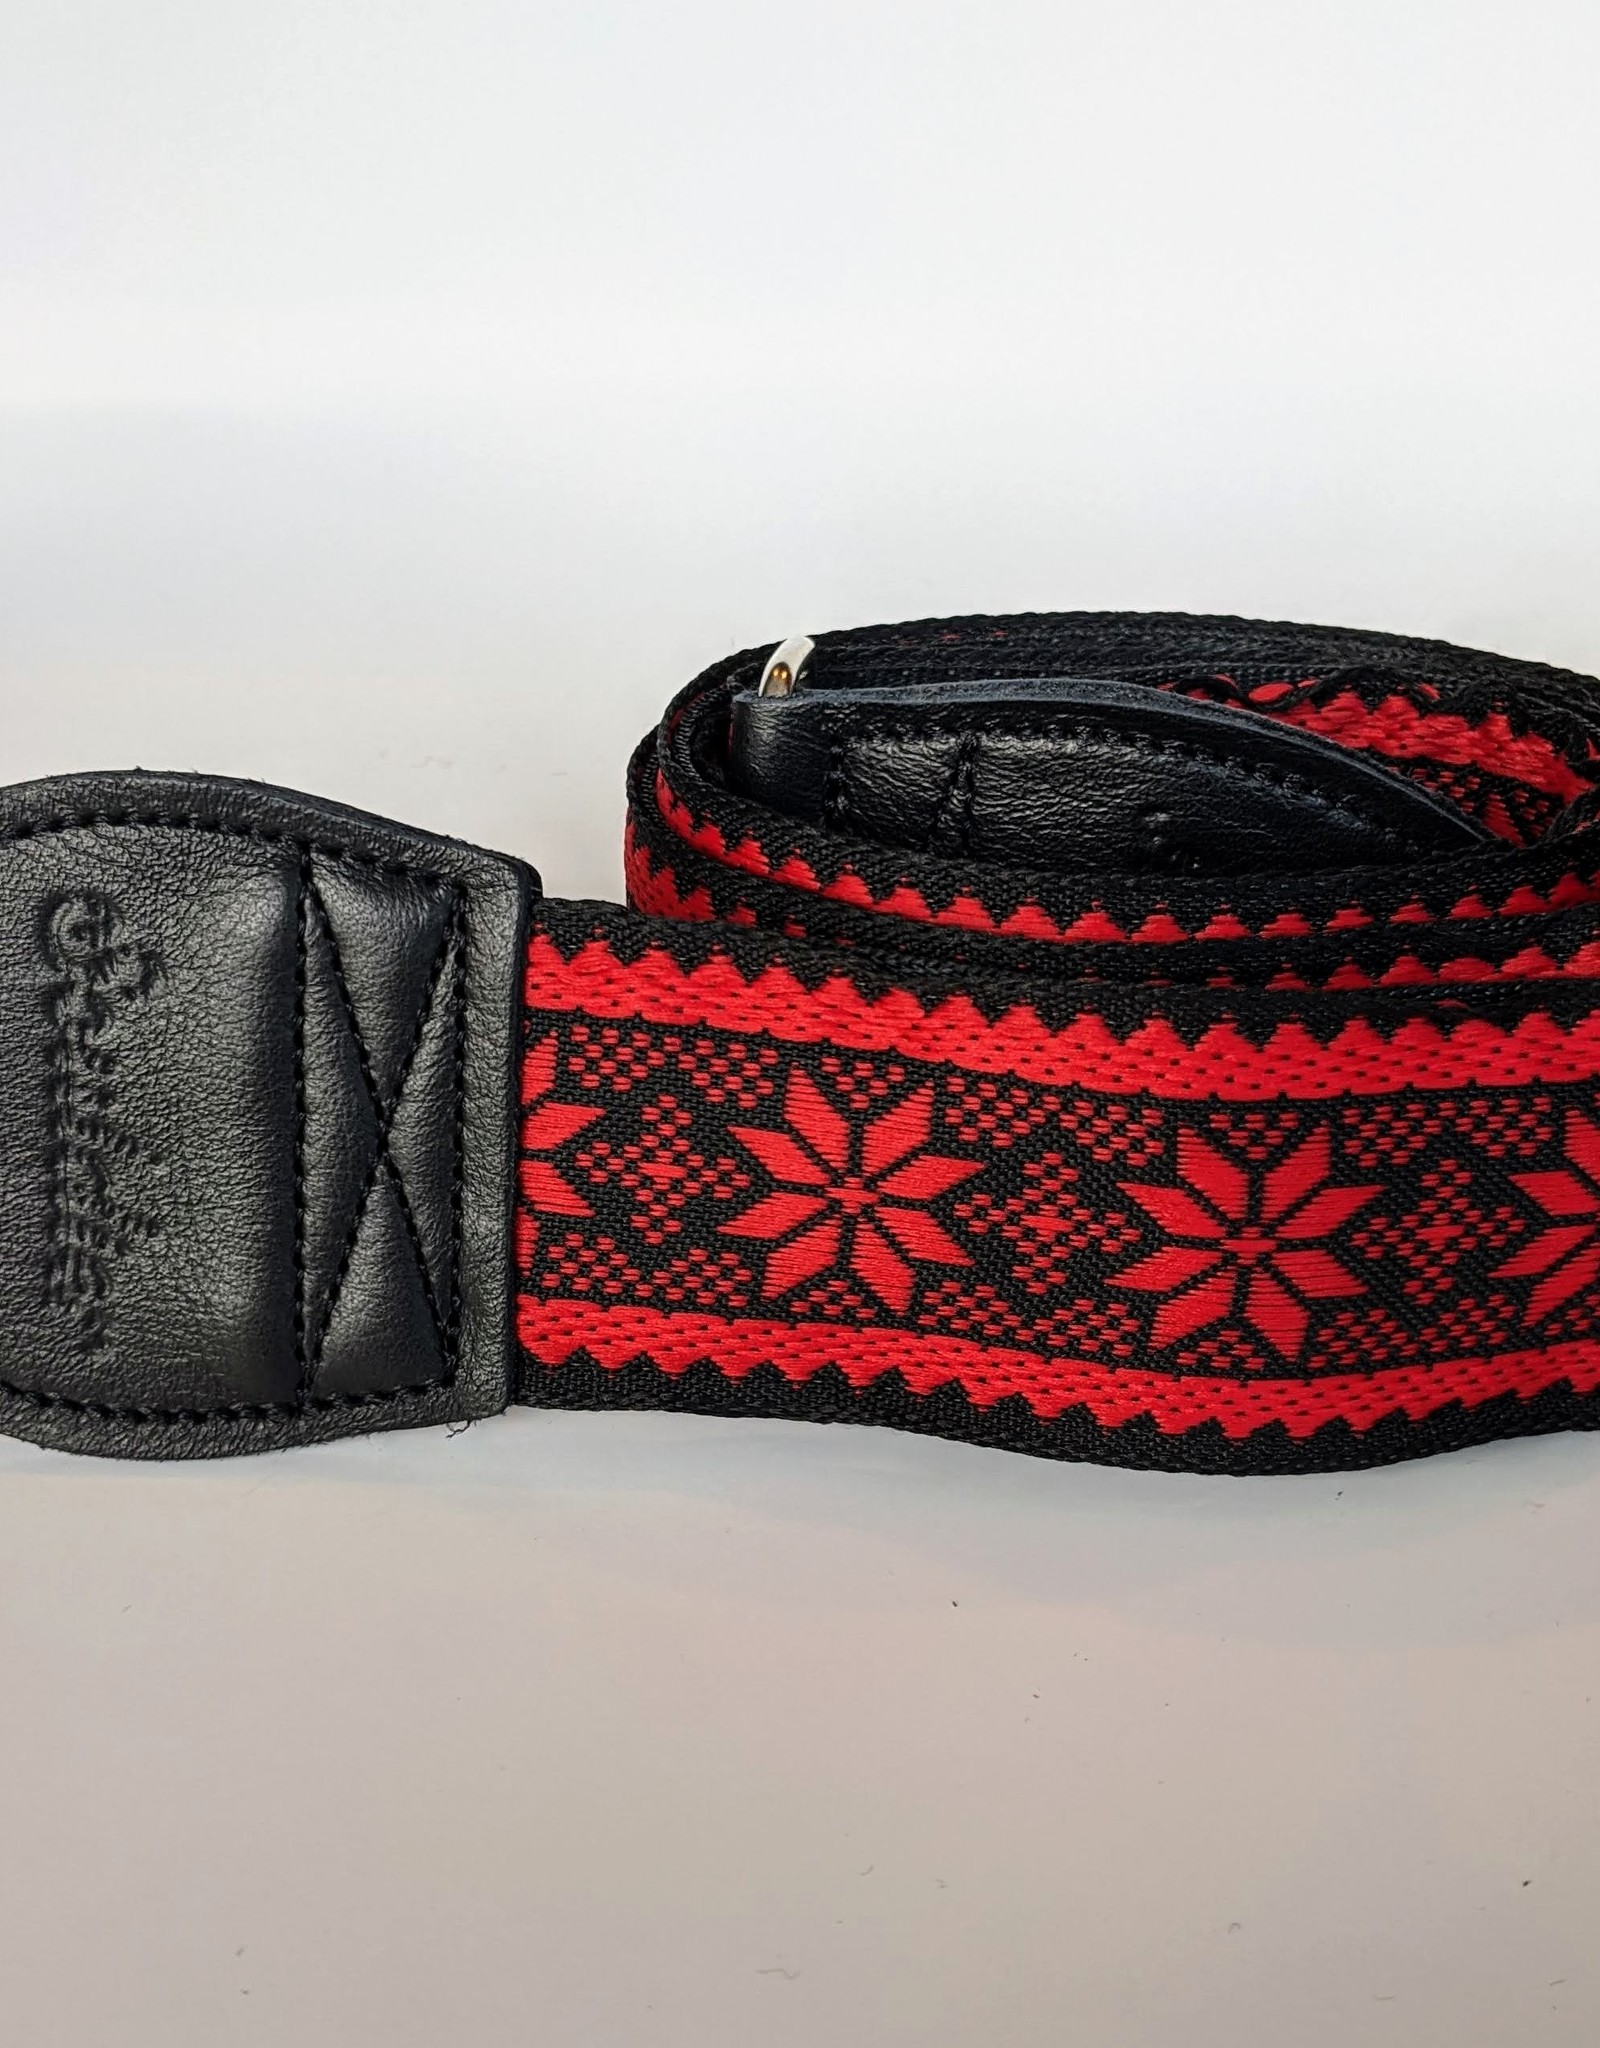 Souldier Souldier Poinsettia Red on Black, Vintage Fabric Guitar Strap